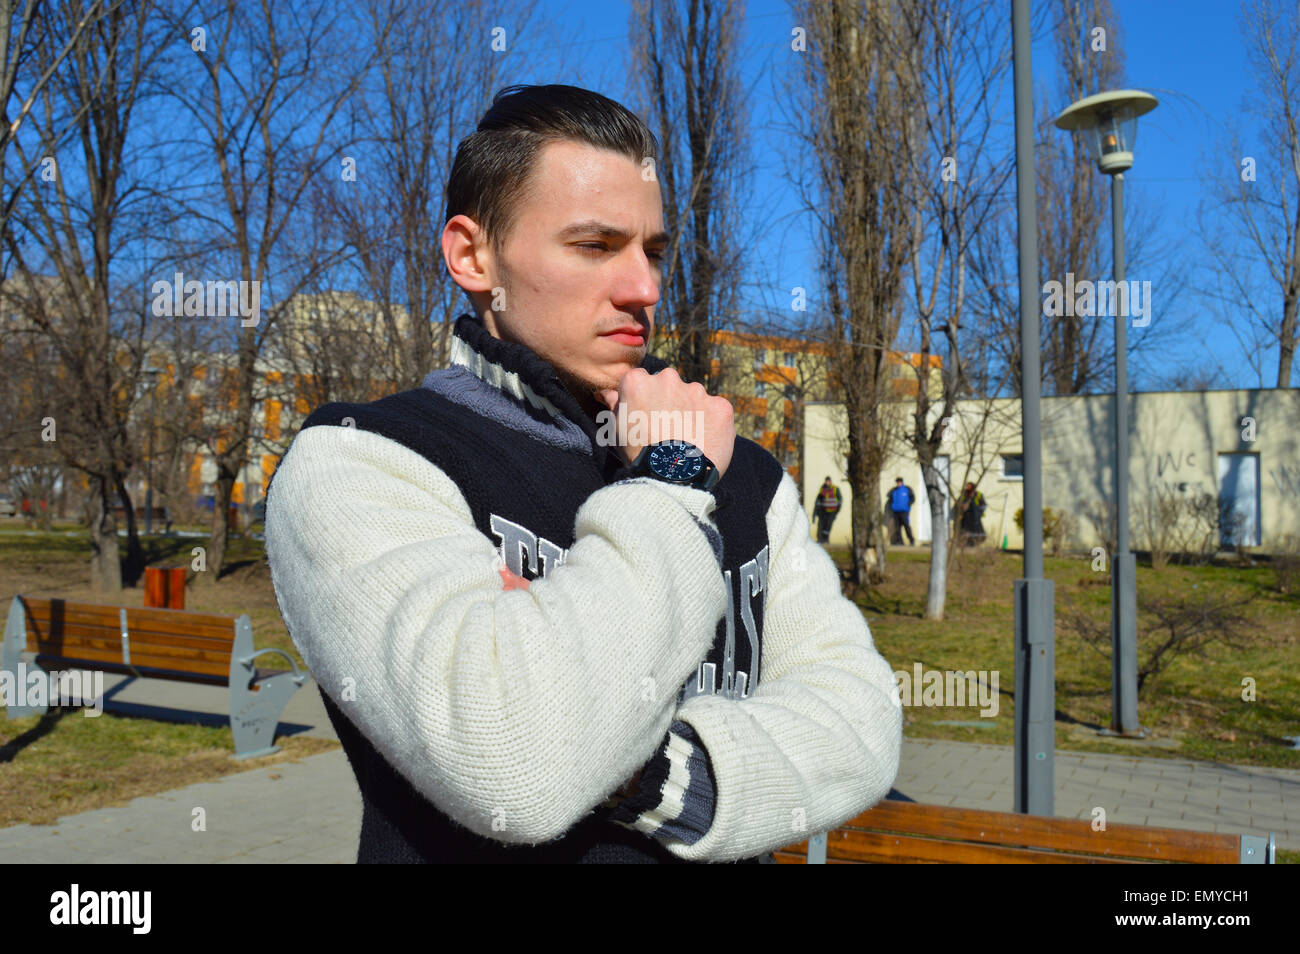 Young man profile with wristwatch on his hand in park - Stock Image